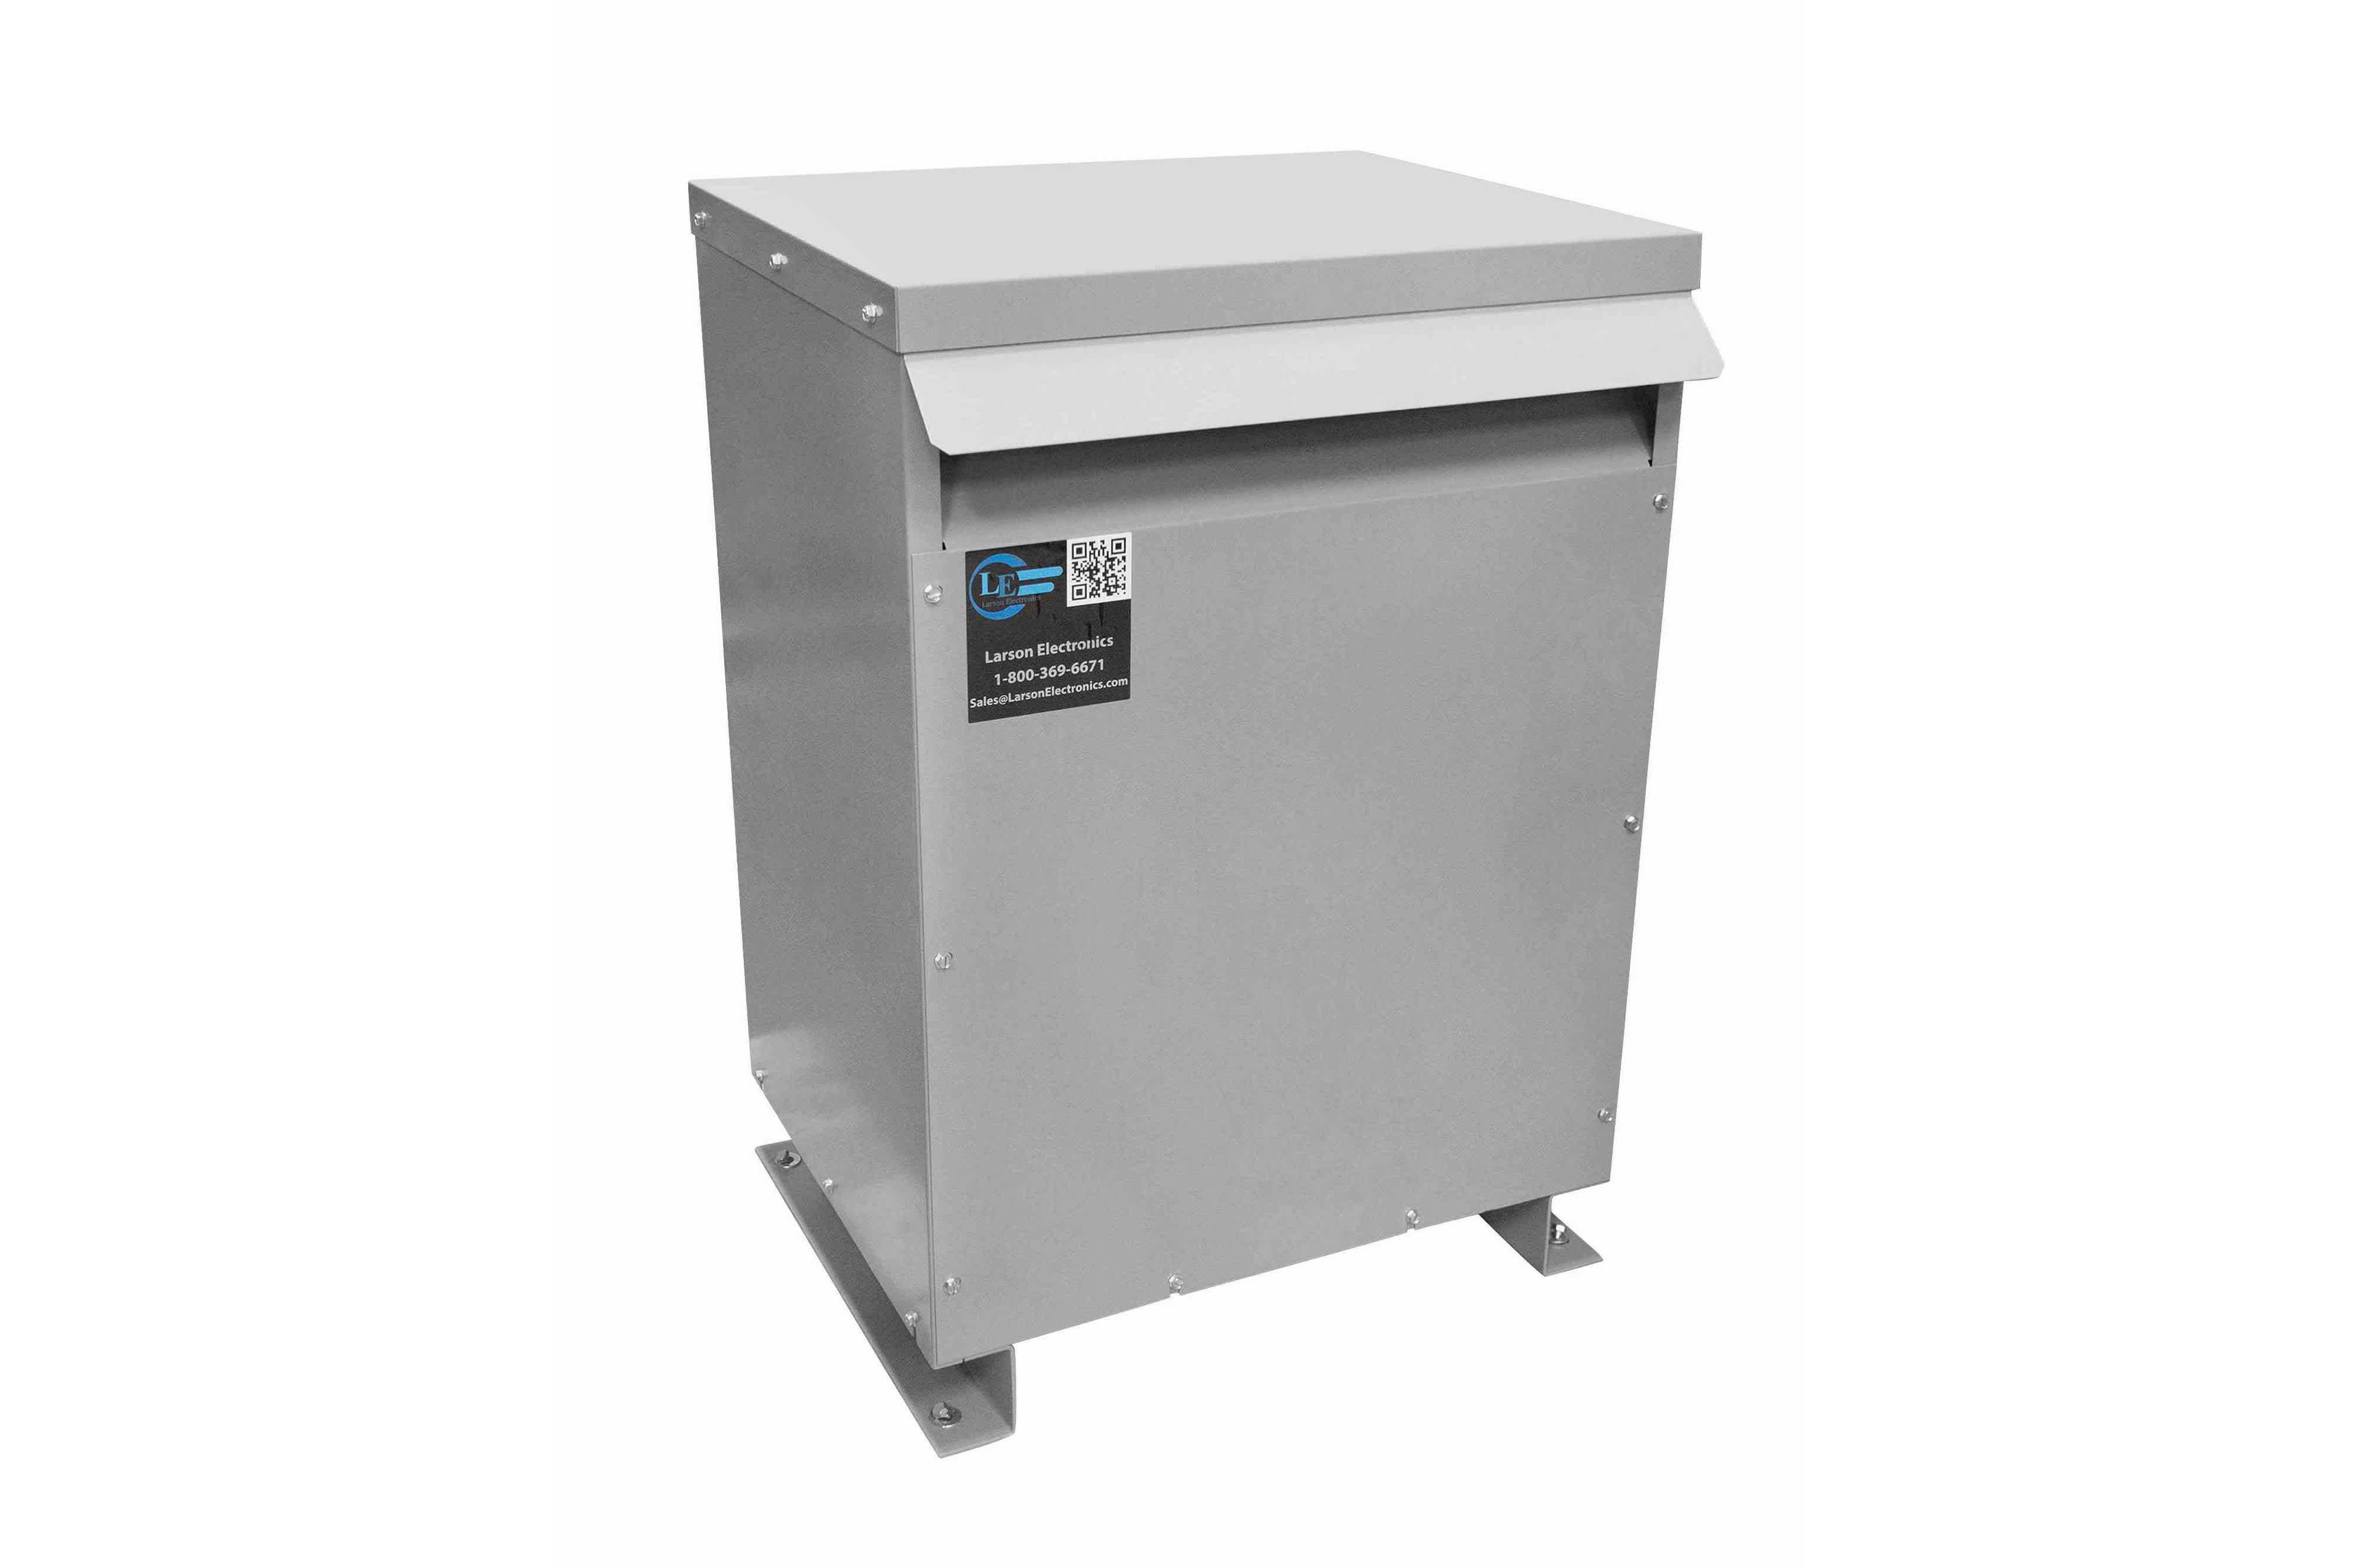 25 kVA 3PH Isolation Transformer, 240V Wye Primary, 380V Delta Secondary, N3R, Ventilated, 60 Hz